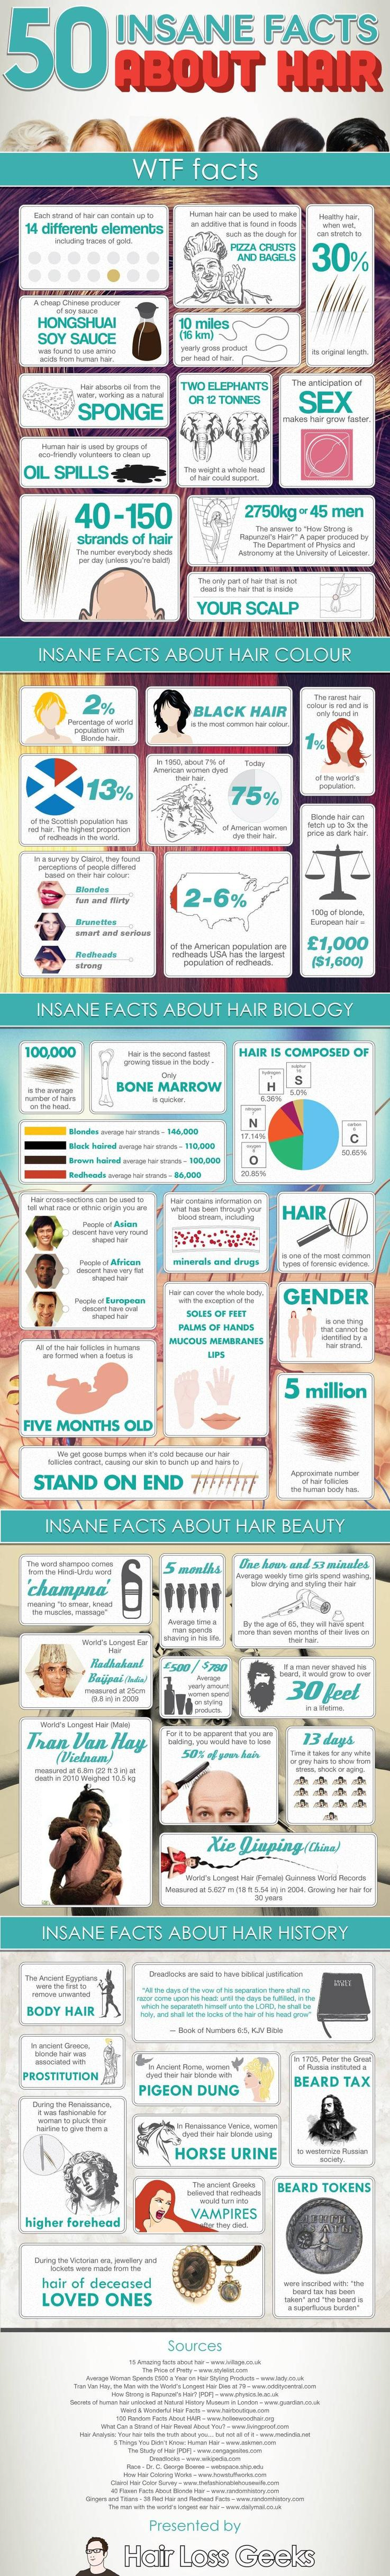 09Hair Facts